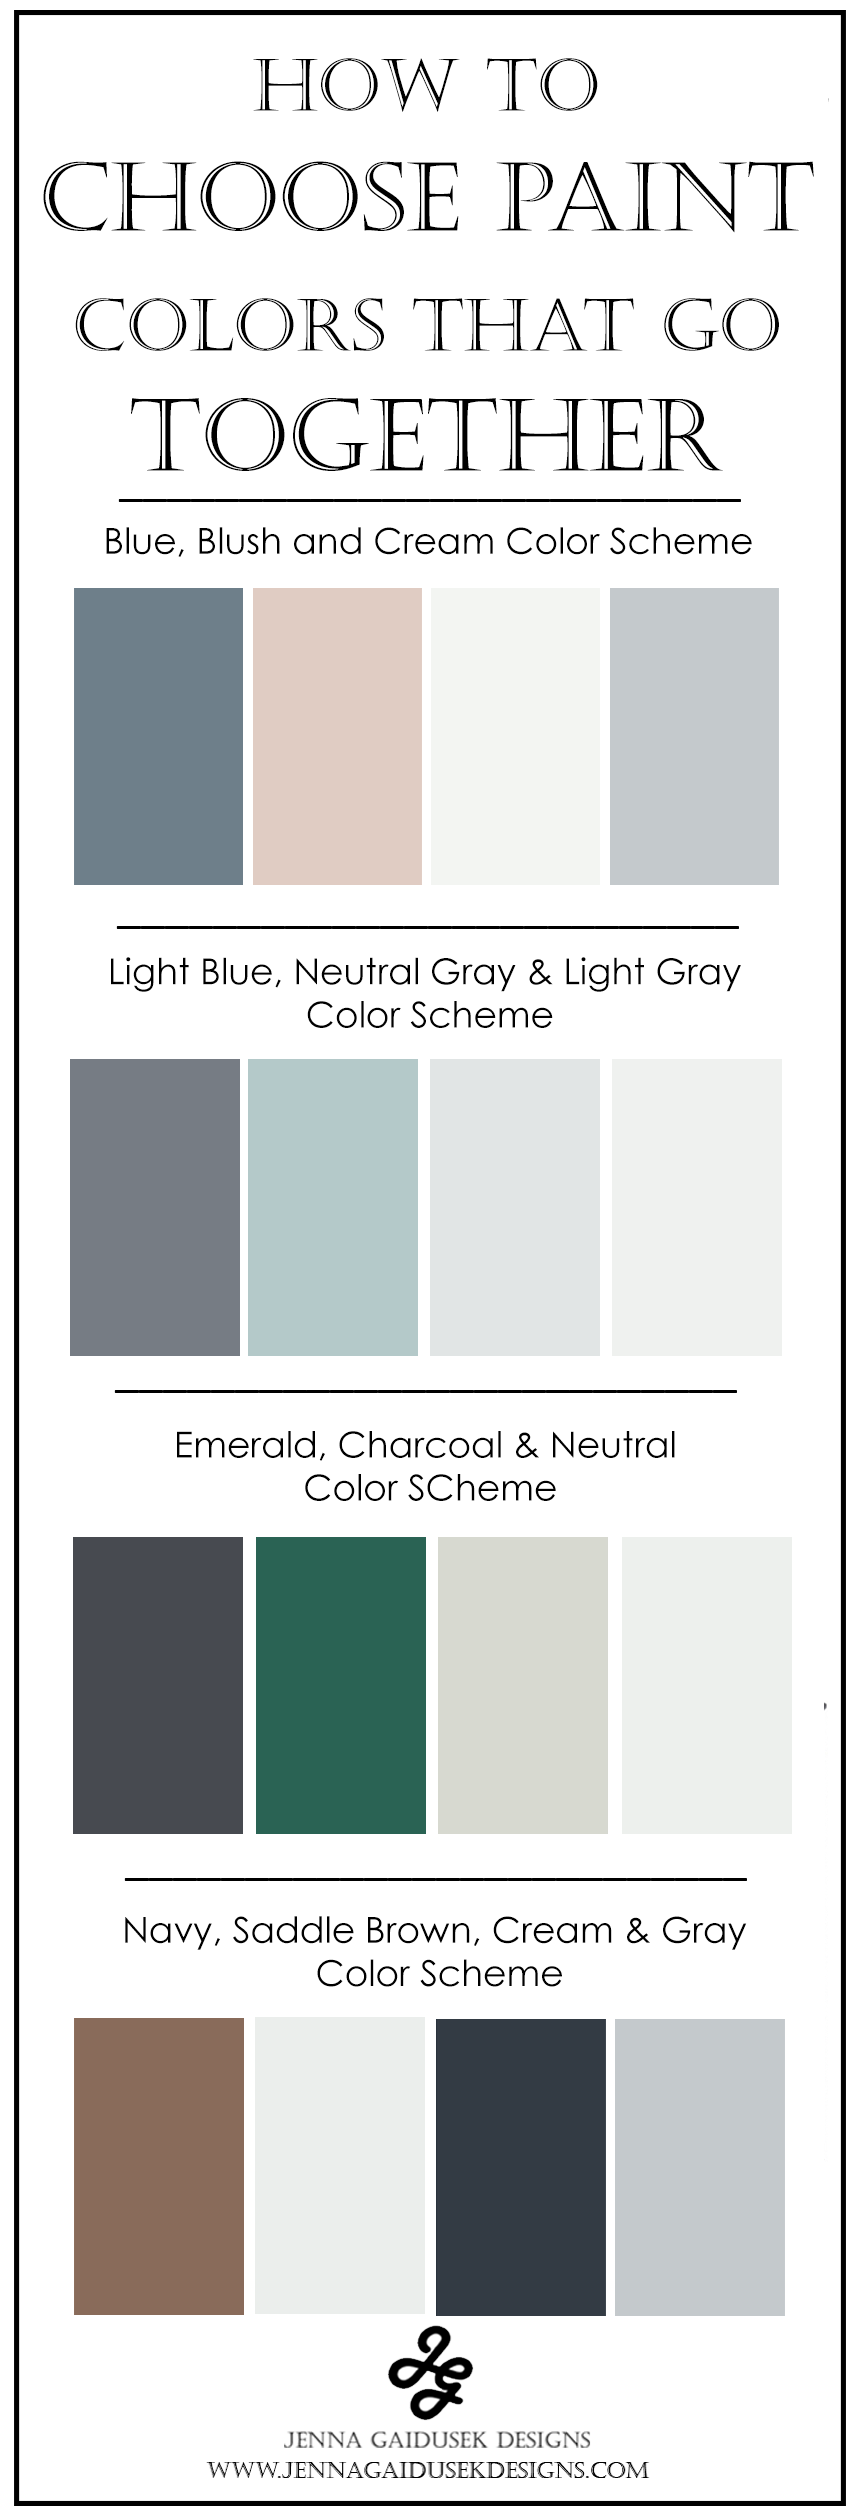 How to Choose Paint Colors That Go Together images